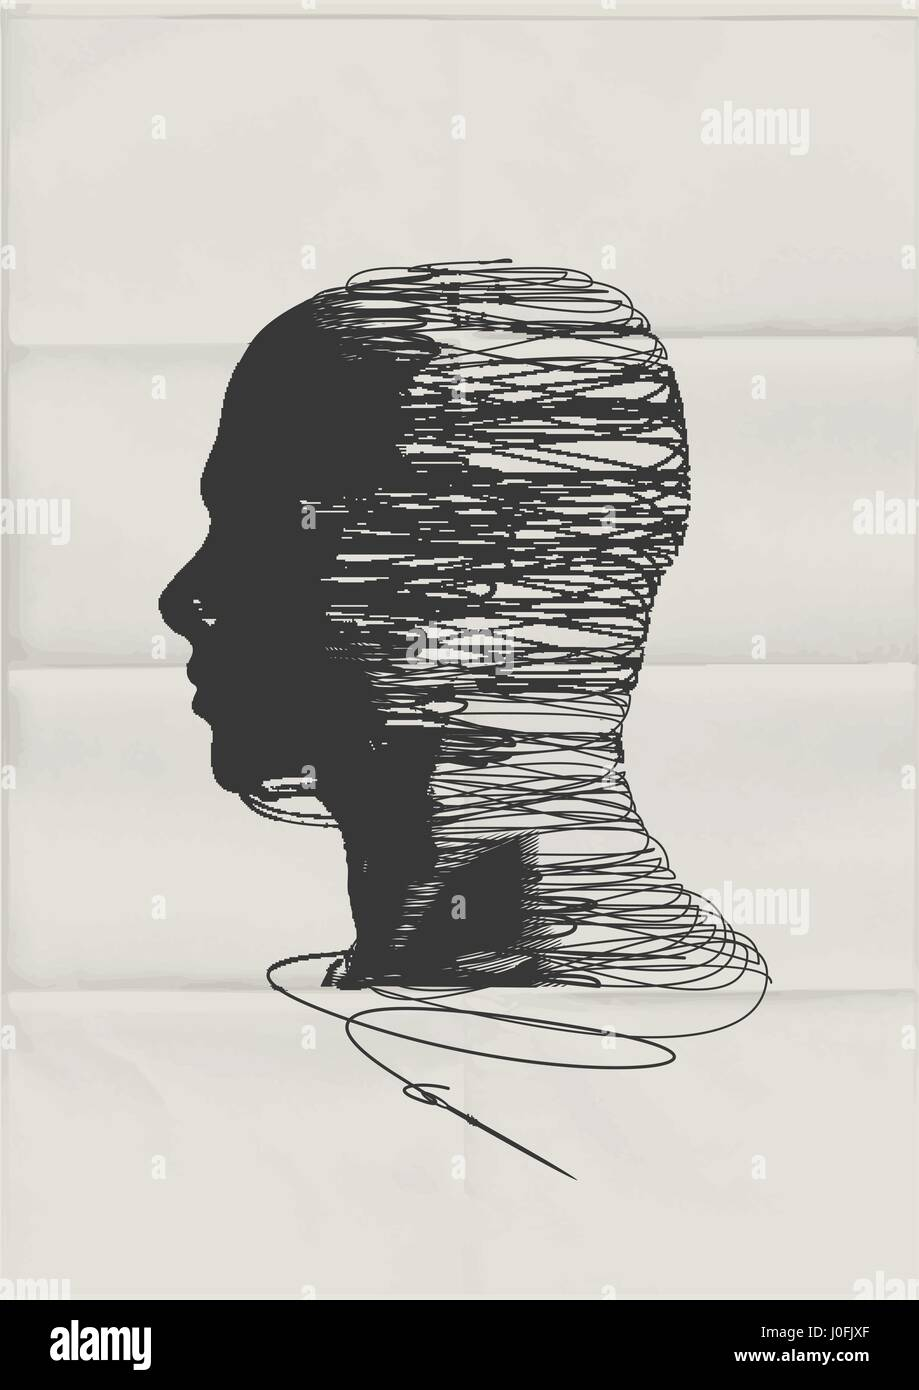 The Human Mind. The shape of a man's head tangled up with threads of string - mental health concept. - Stock Image